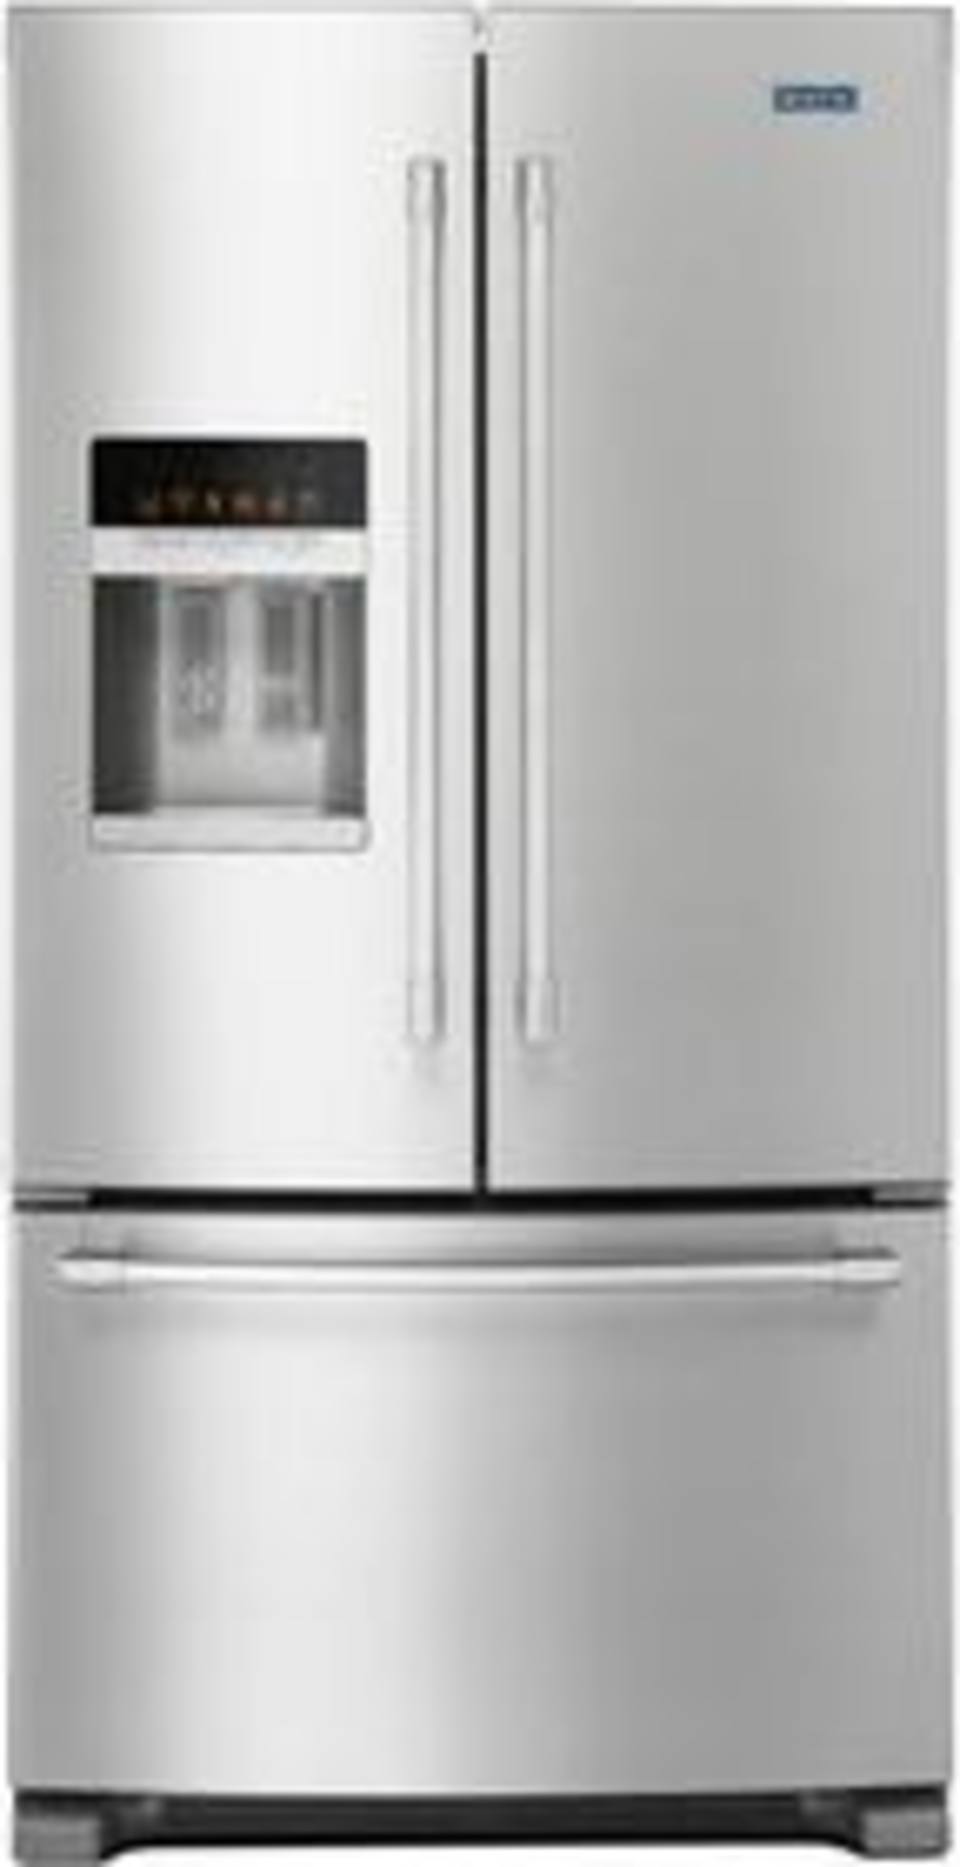 Maytag® 36- Inch Wide French Door Refrigerator with PowerCold® Feature